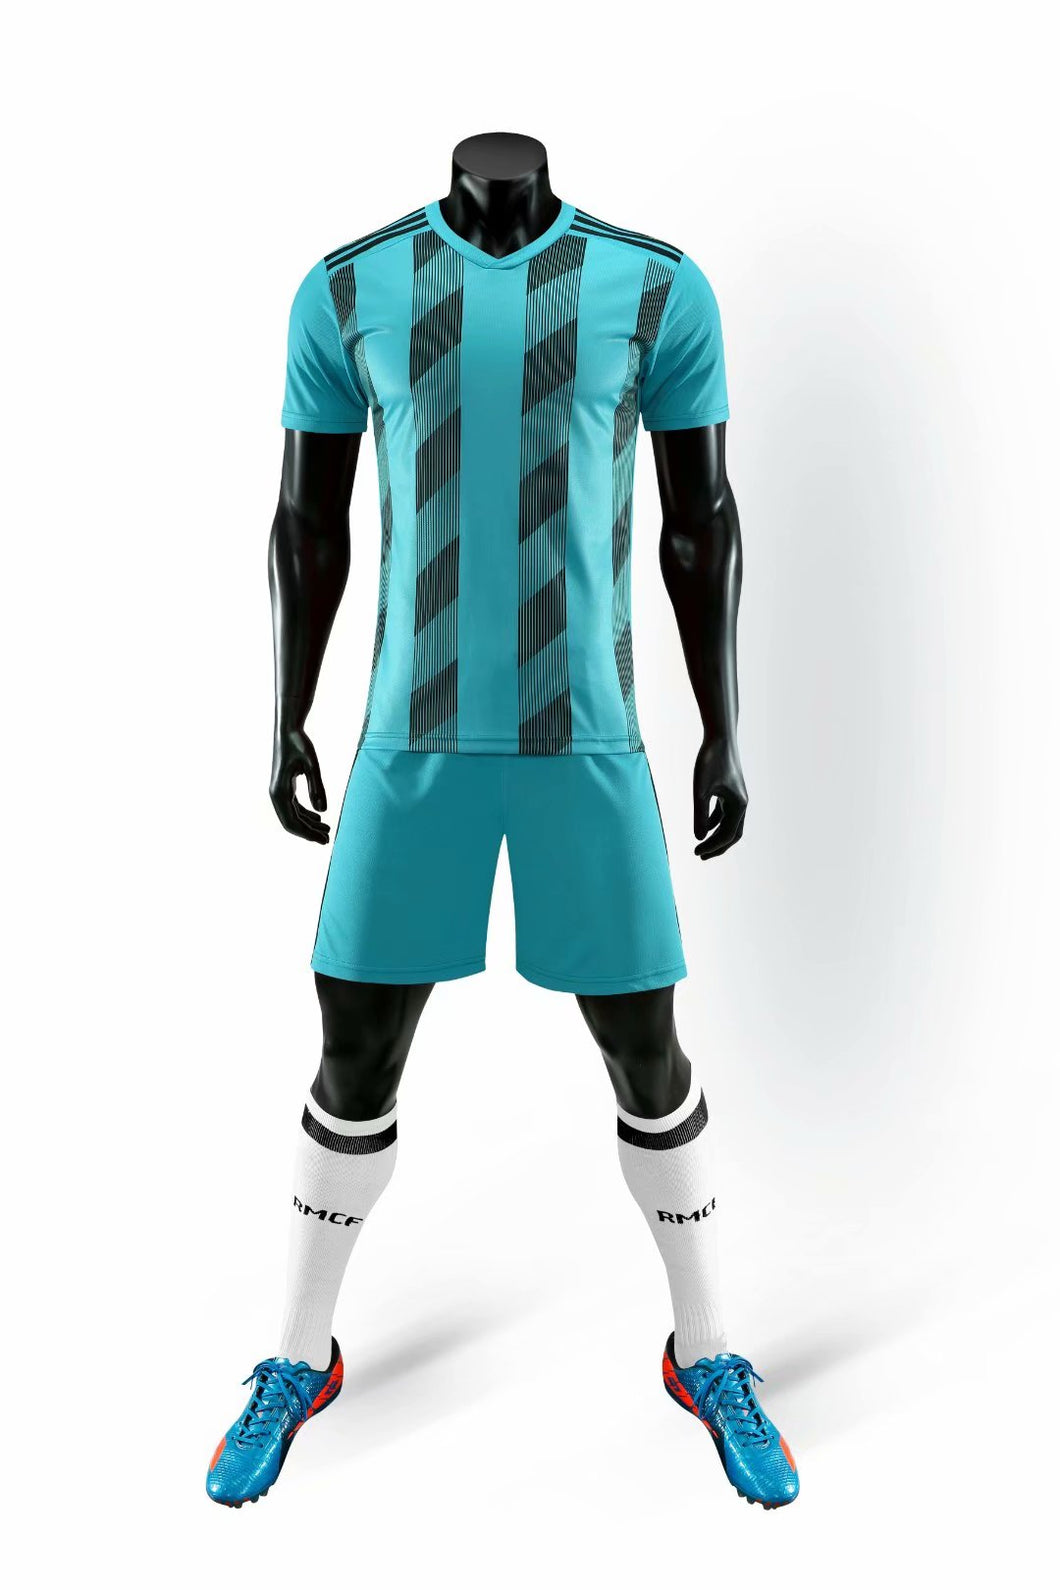 Full Football Kit - Light Blue Checkered Stripe Design